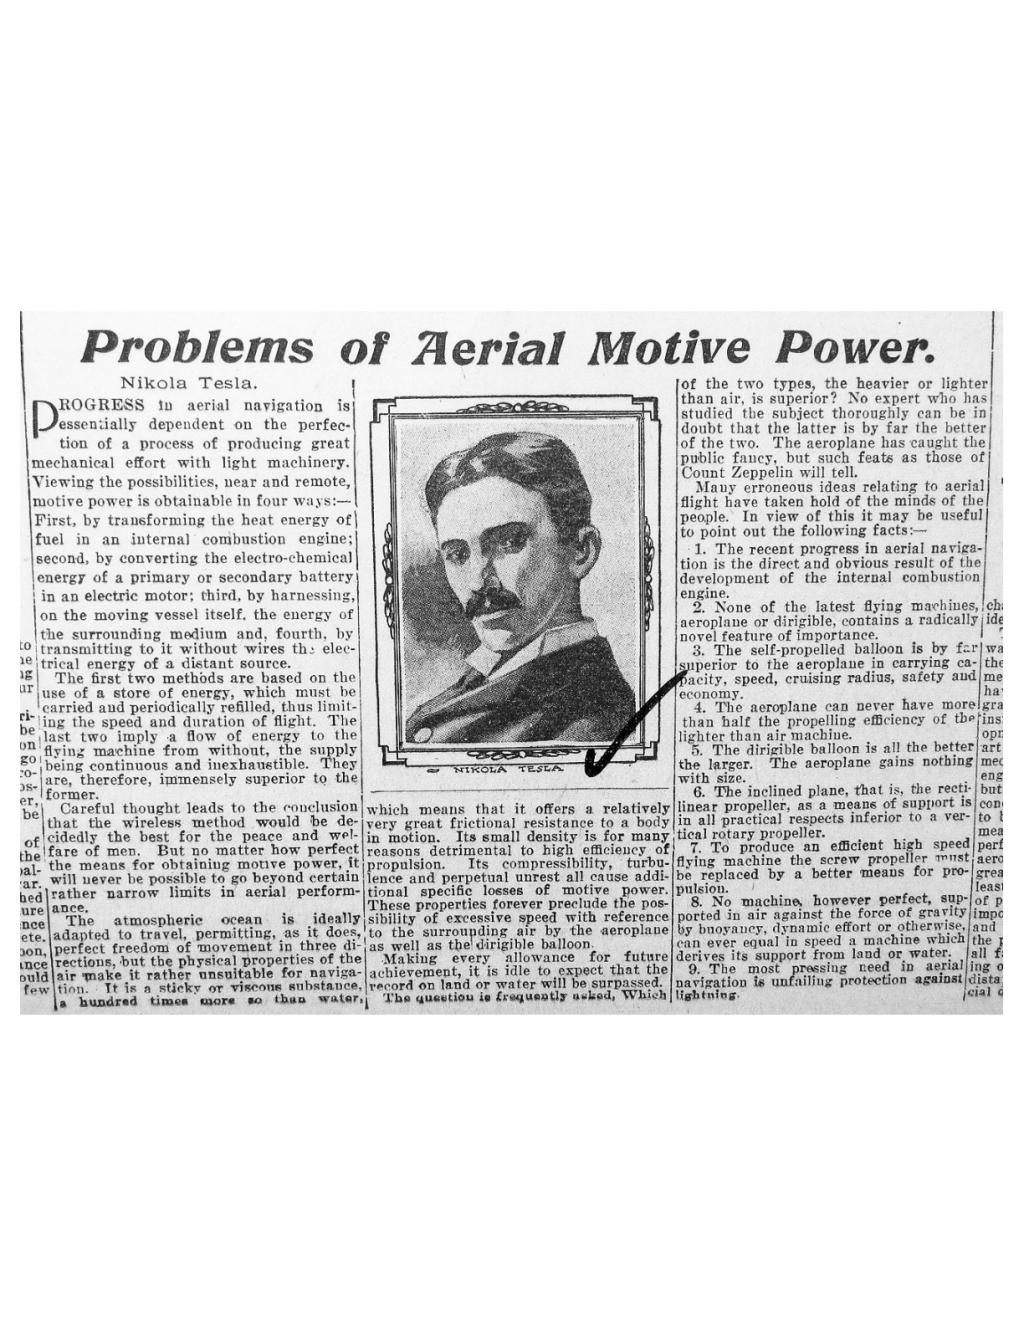 Preview of Problems of Aerial Motive Power article